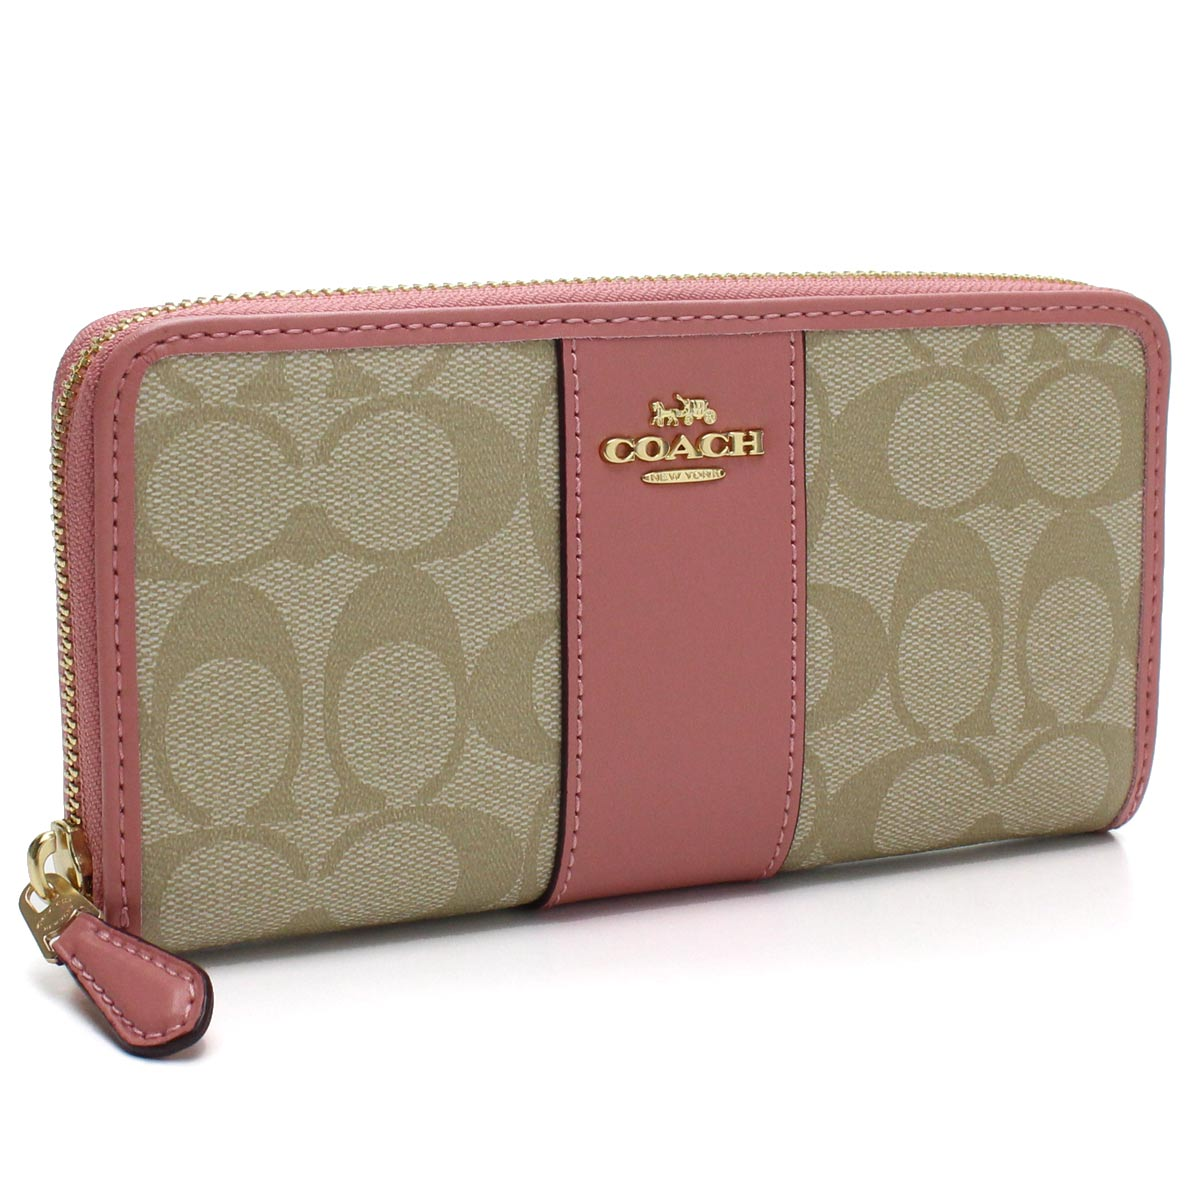 50b3db2f17 Bighit The total brand wholesale: Coach COACH signature round fastener long  wallet F54630 IMNHK beige system pink system | Rakuten Global Market